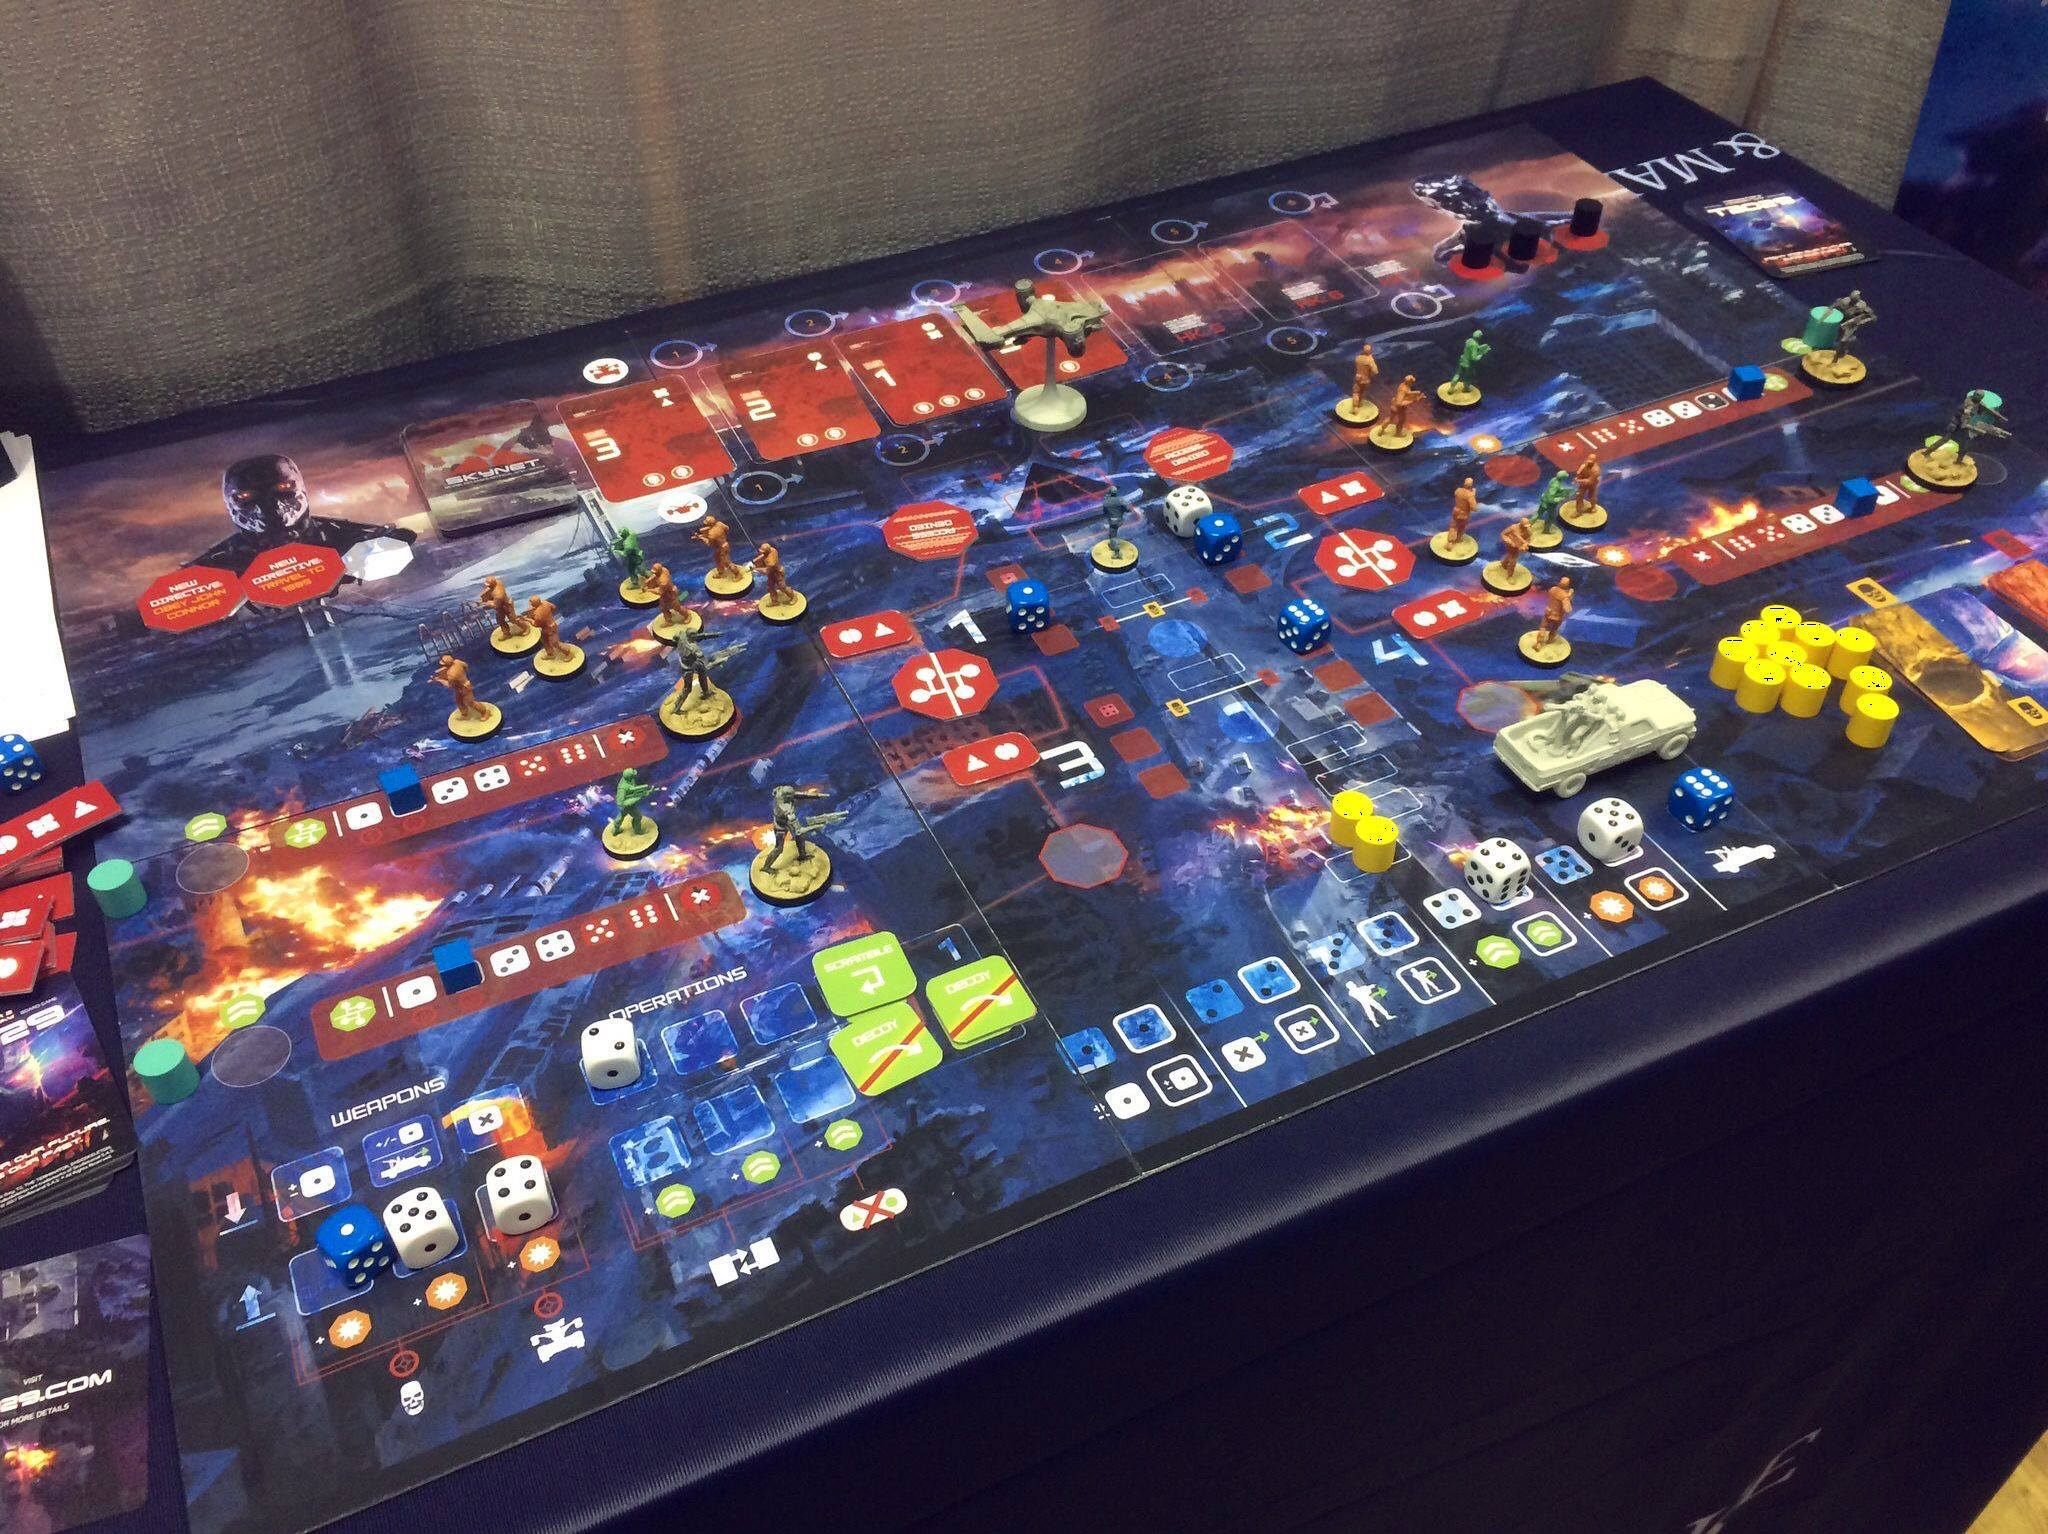 T2029 Terminator2 Judgment Day Board Game The 20 Strangest Items Of Movie Merchandise You've Ever Seen